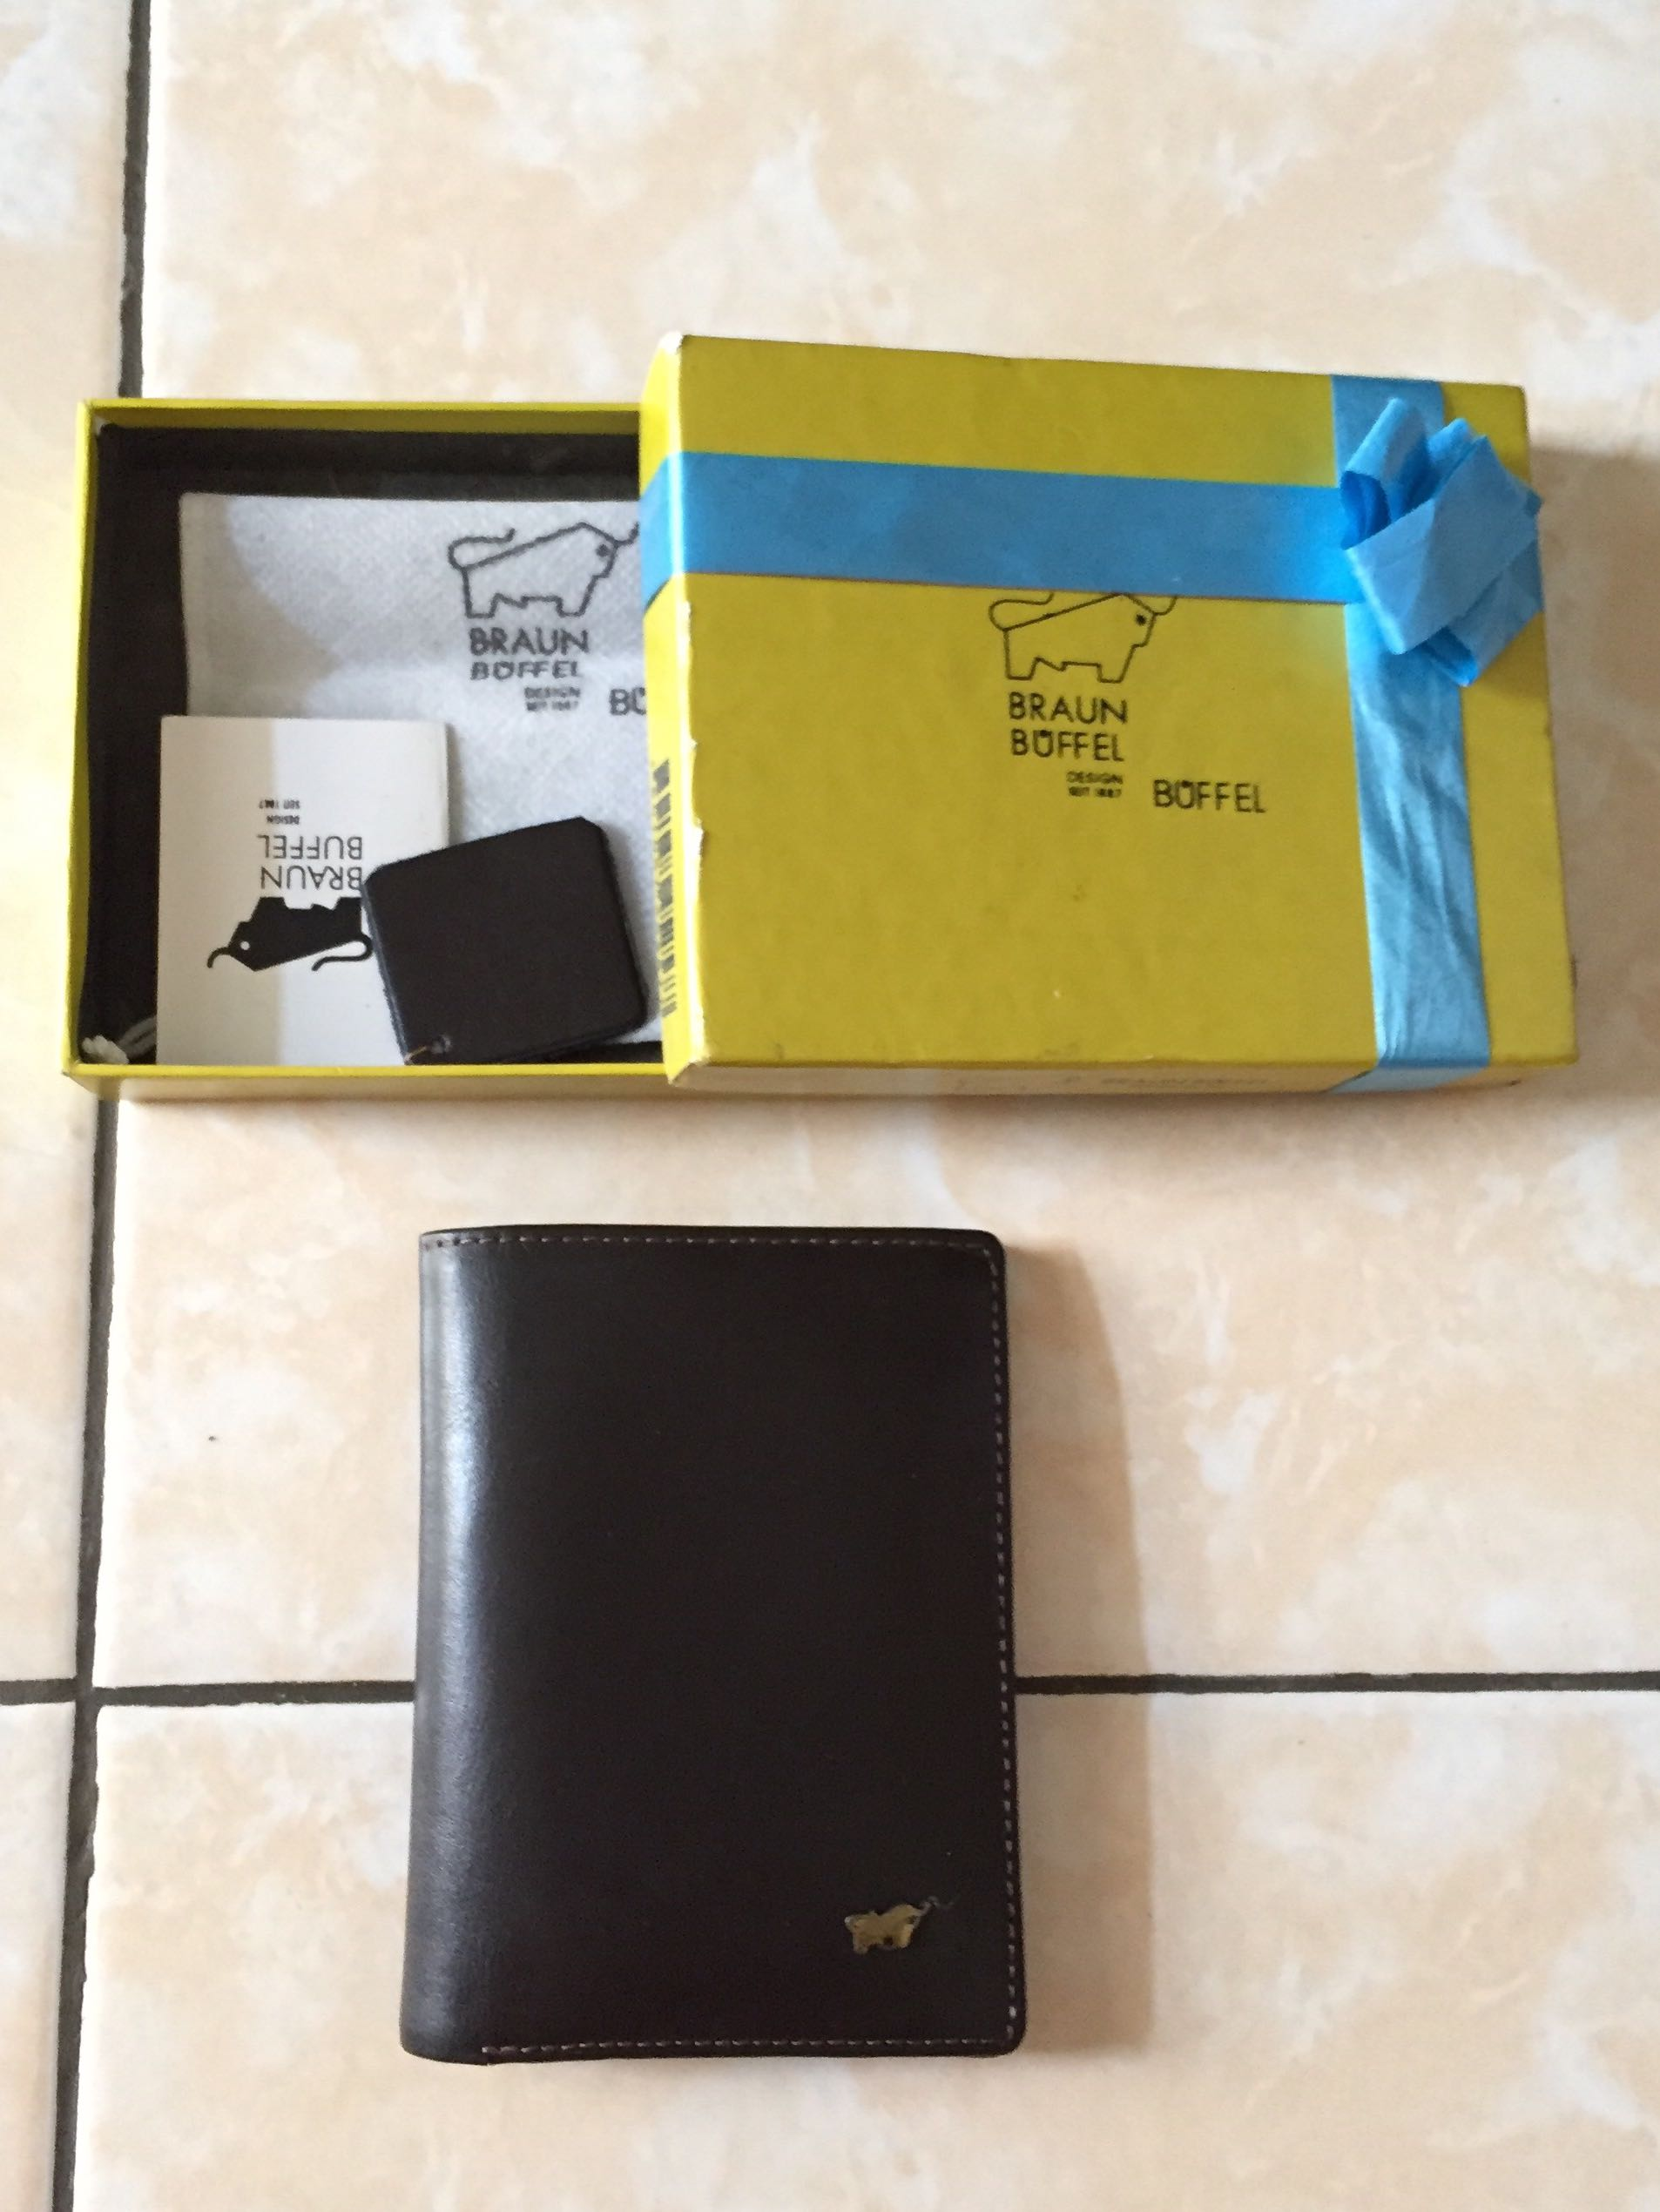 Dompet Braun Buffle (Not Authentic)